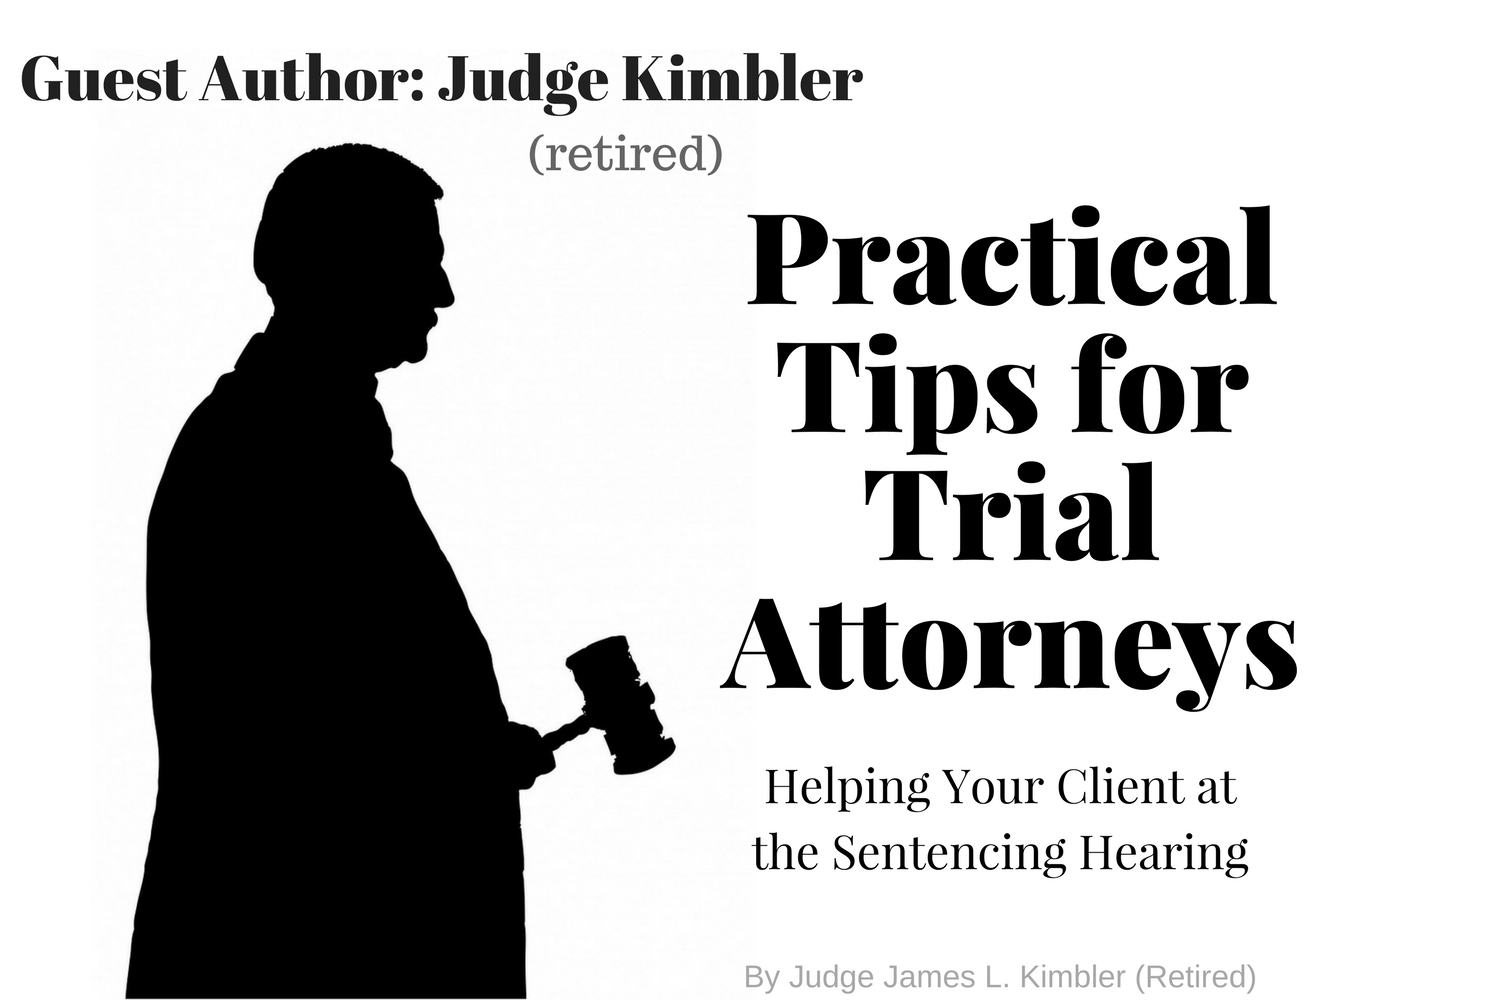 Practical Tips for Trial Attorneys